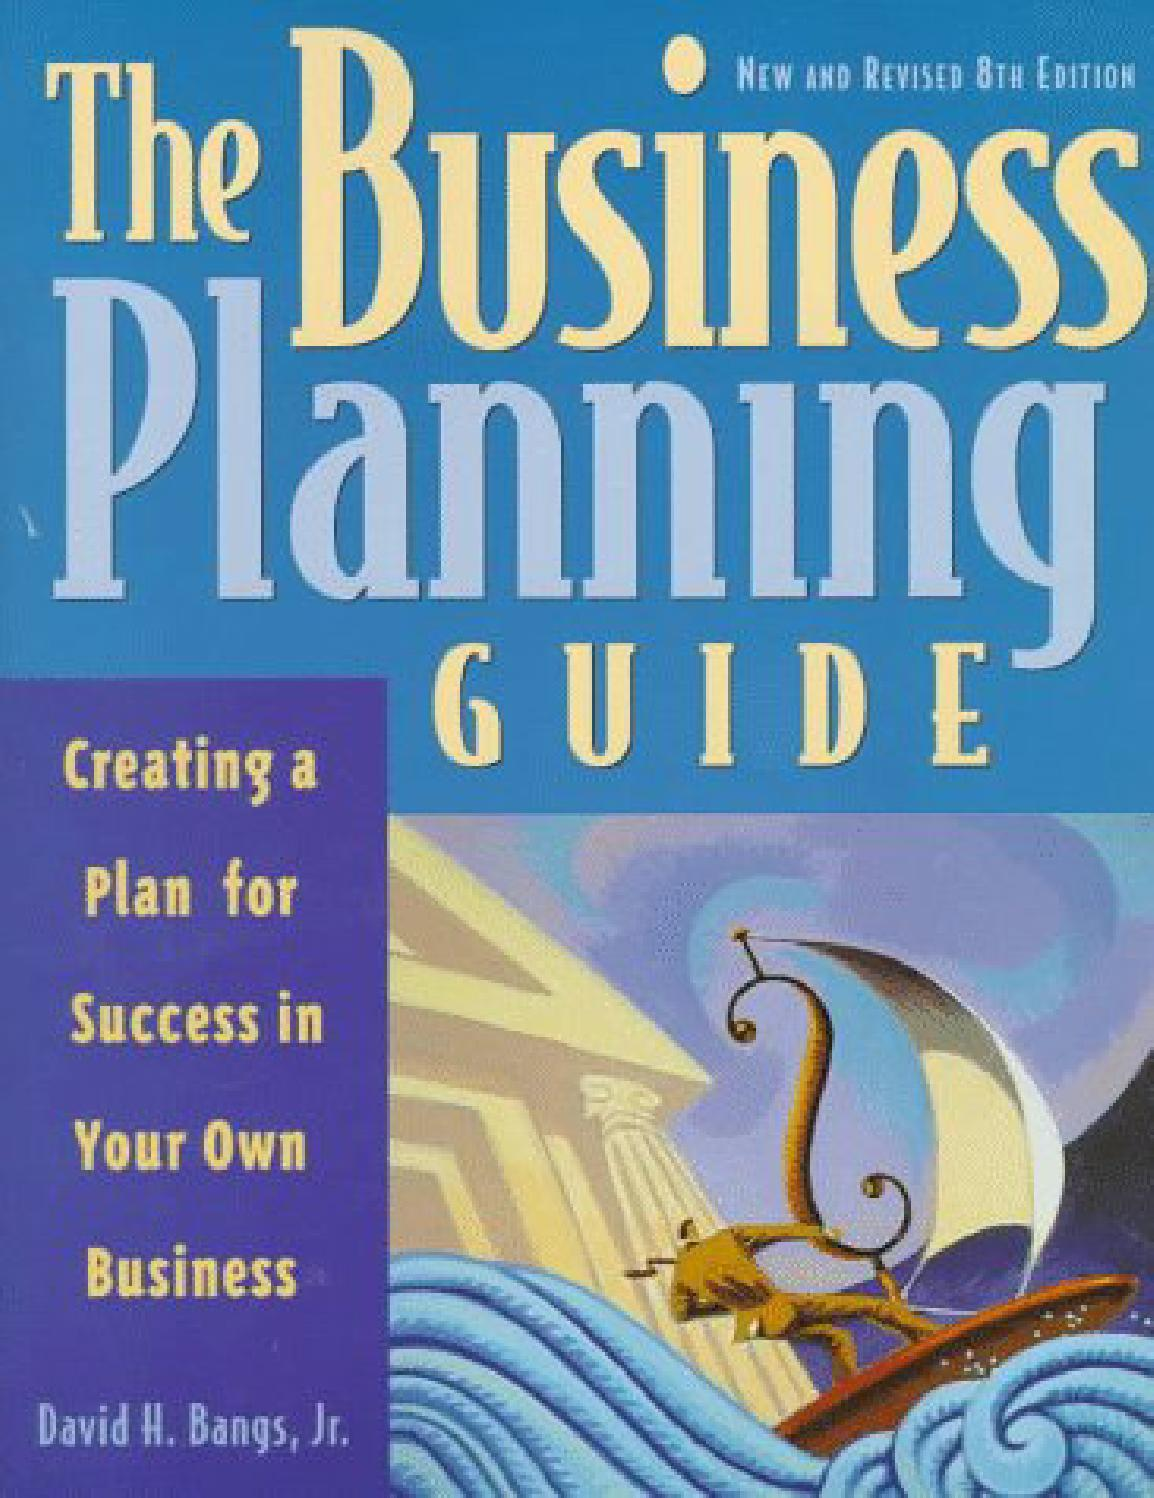 Business planning guide david h bangs pdf to jpg